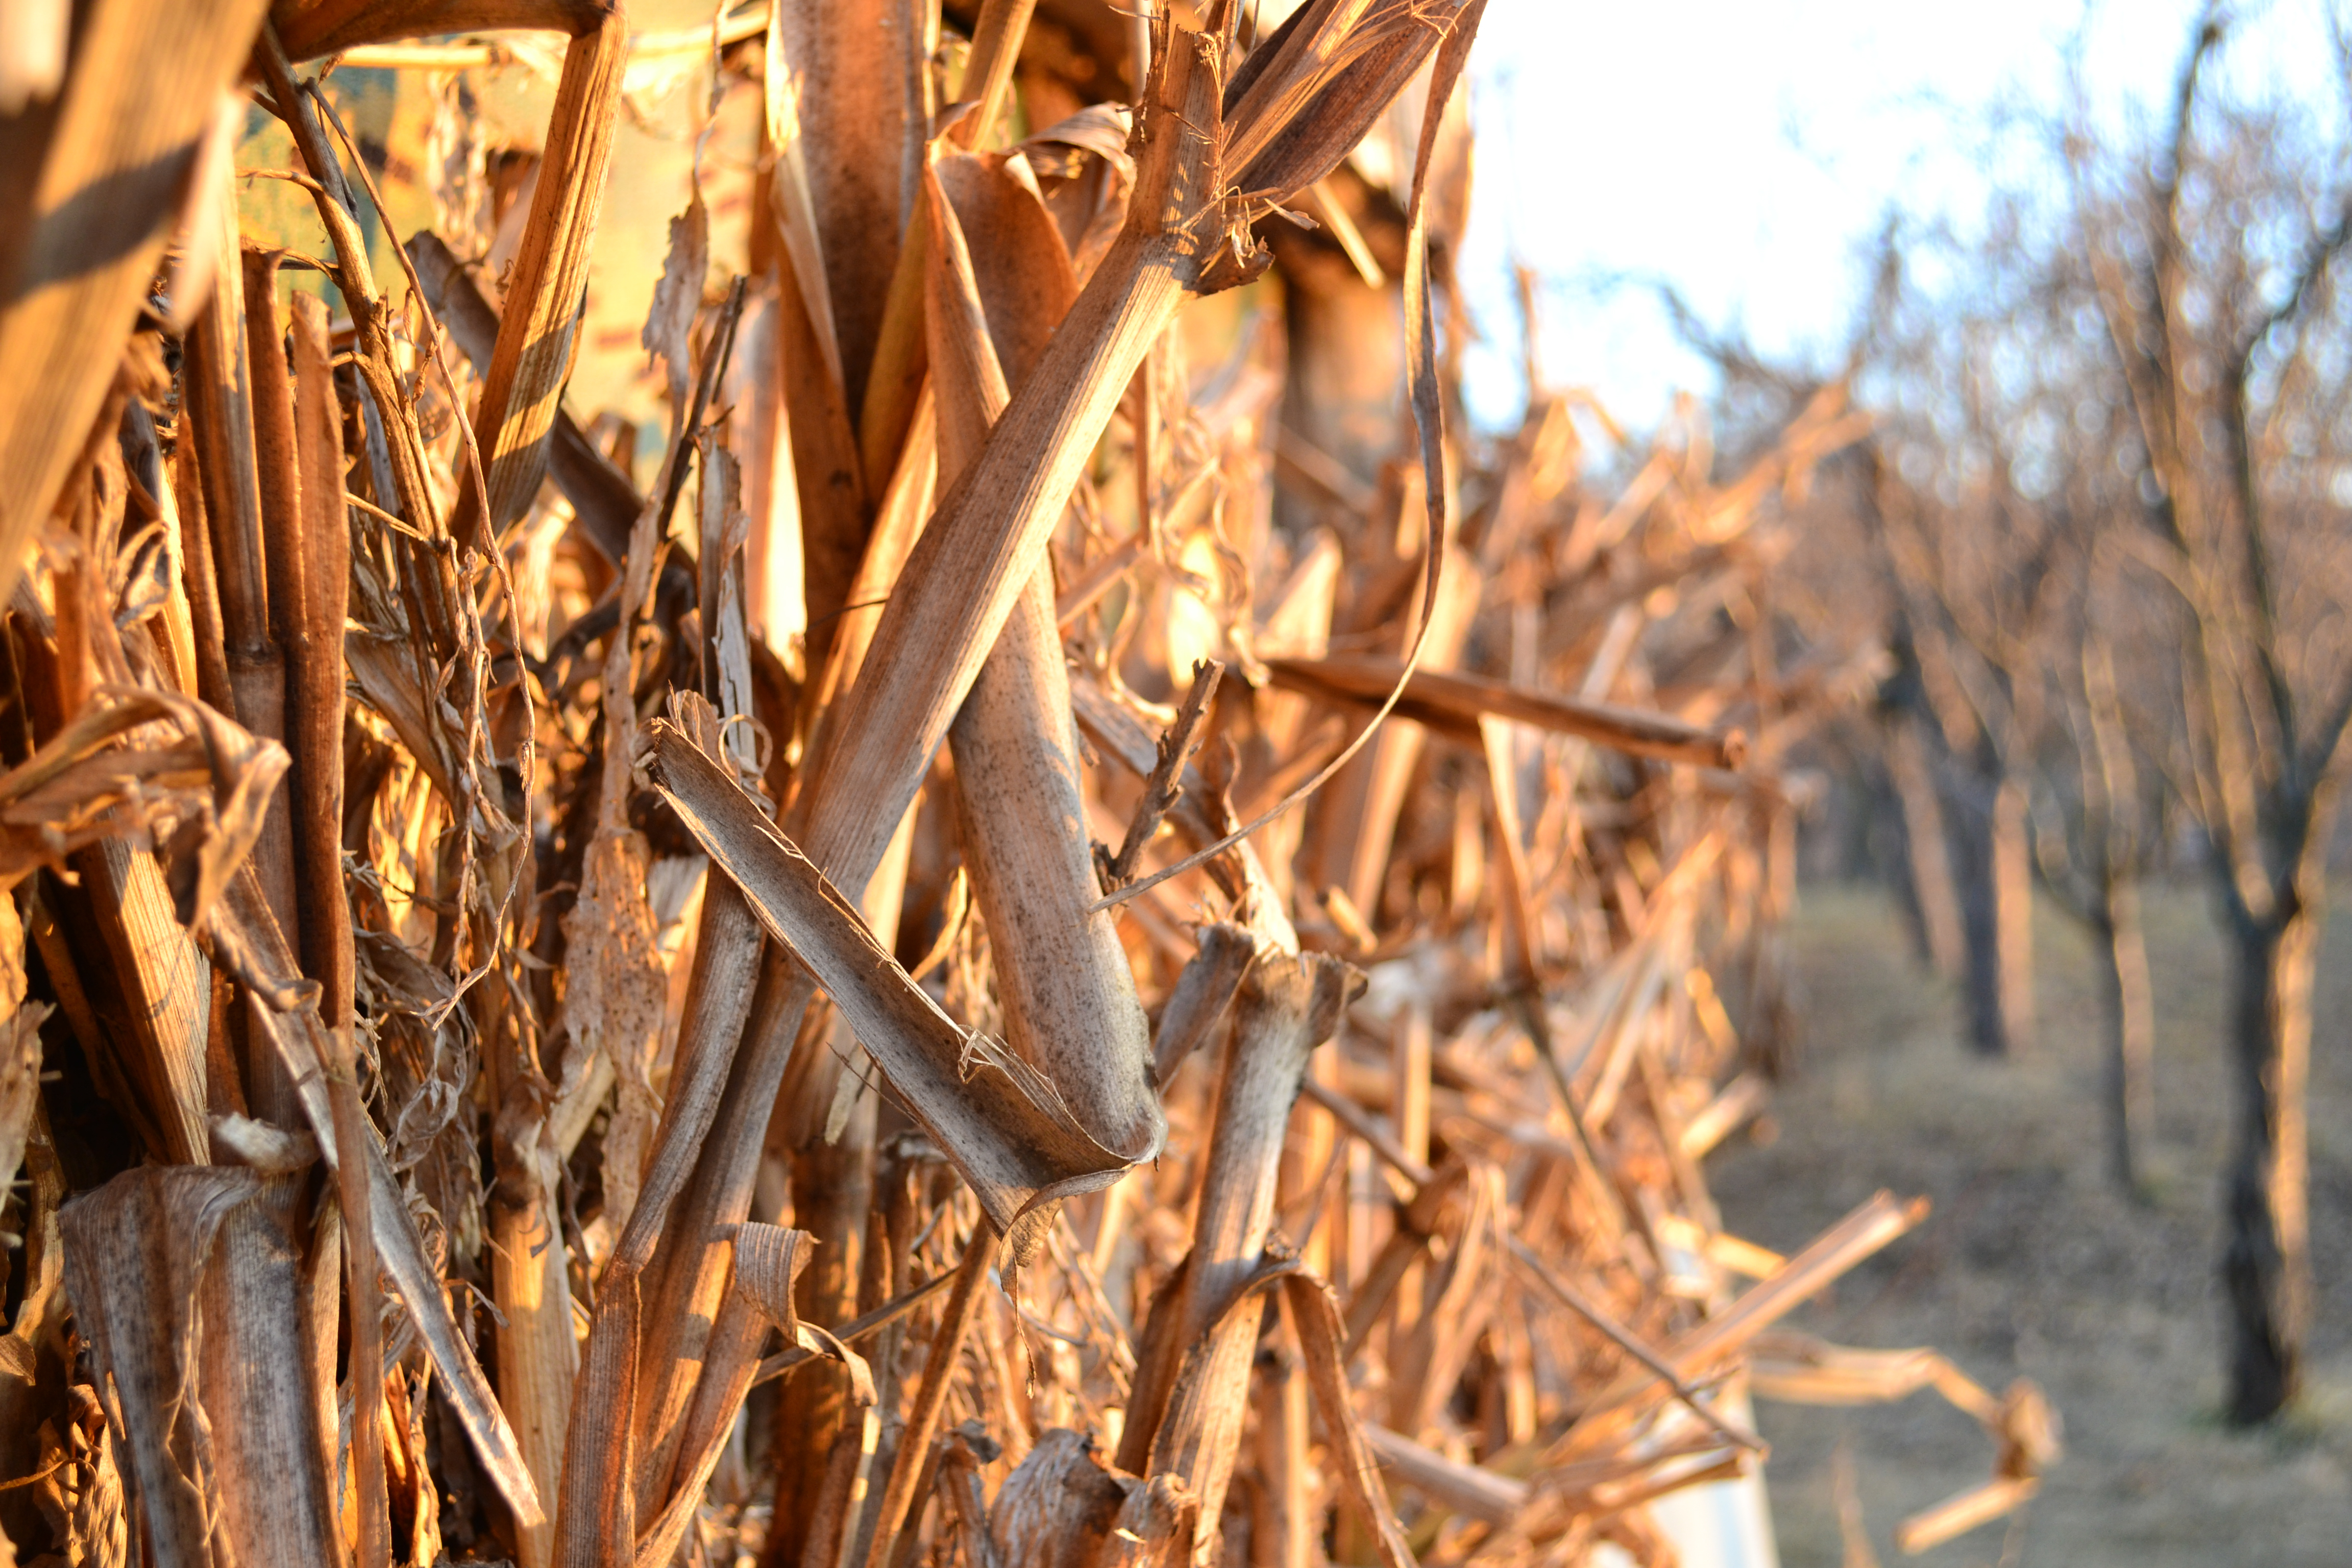 Country life, Corn, Dry, Field, Trees, HQ Photo